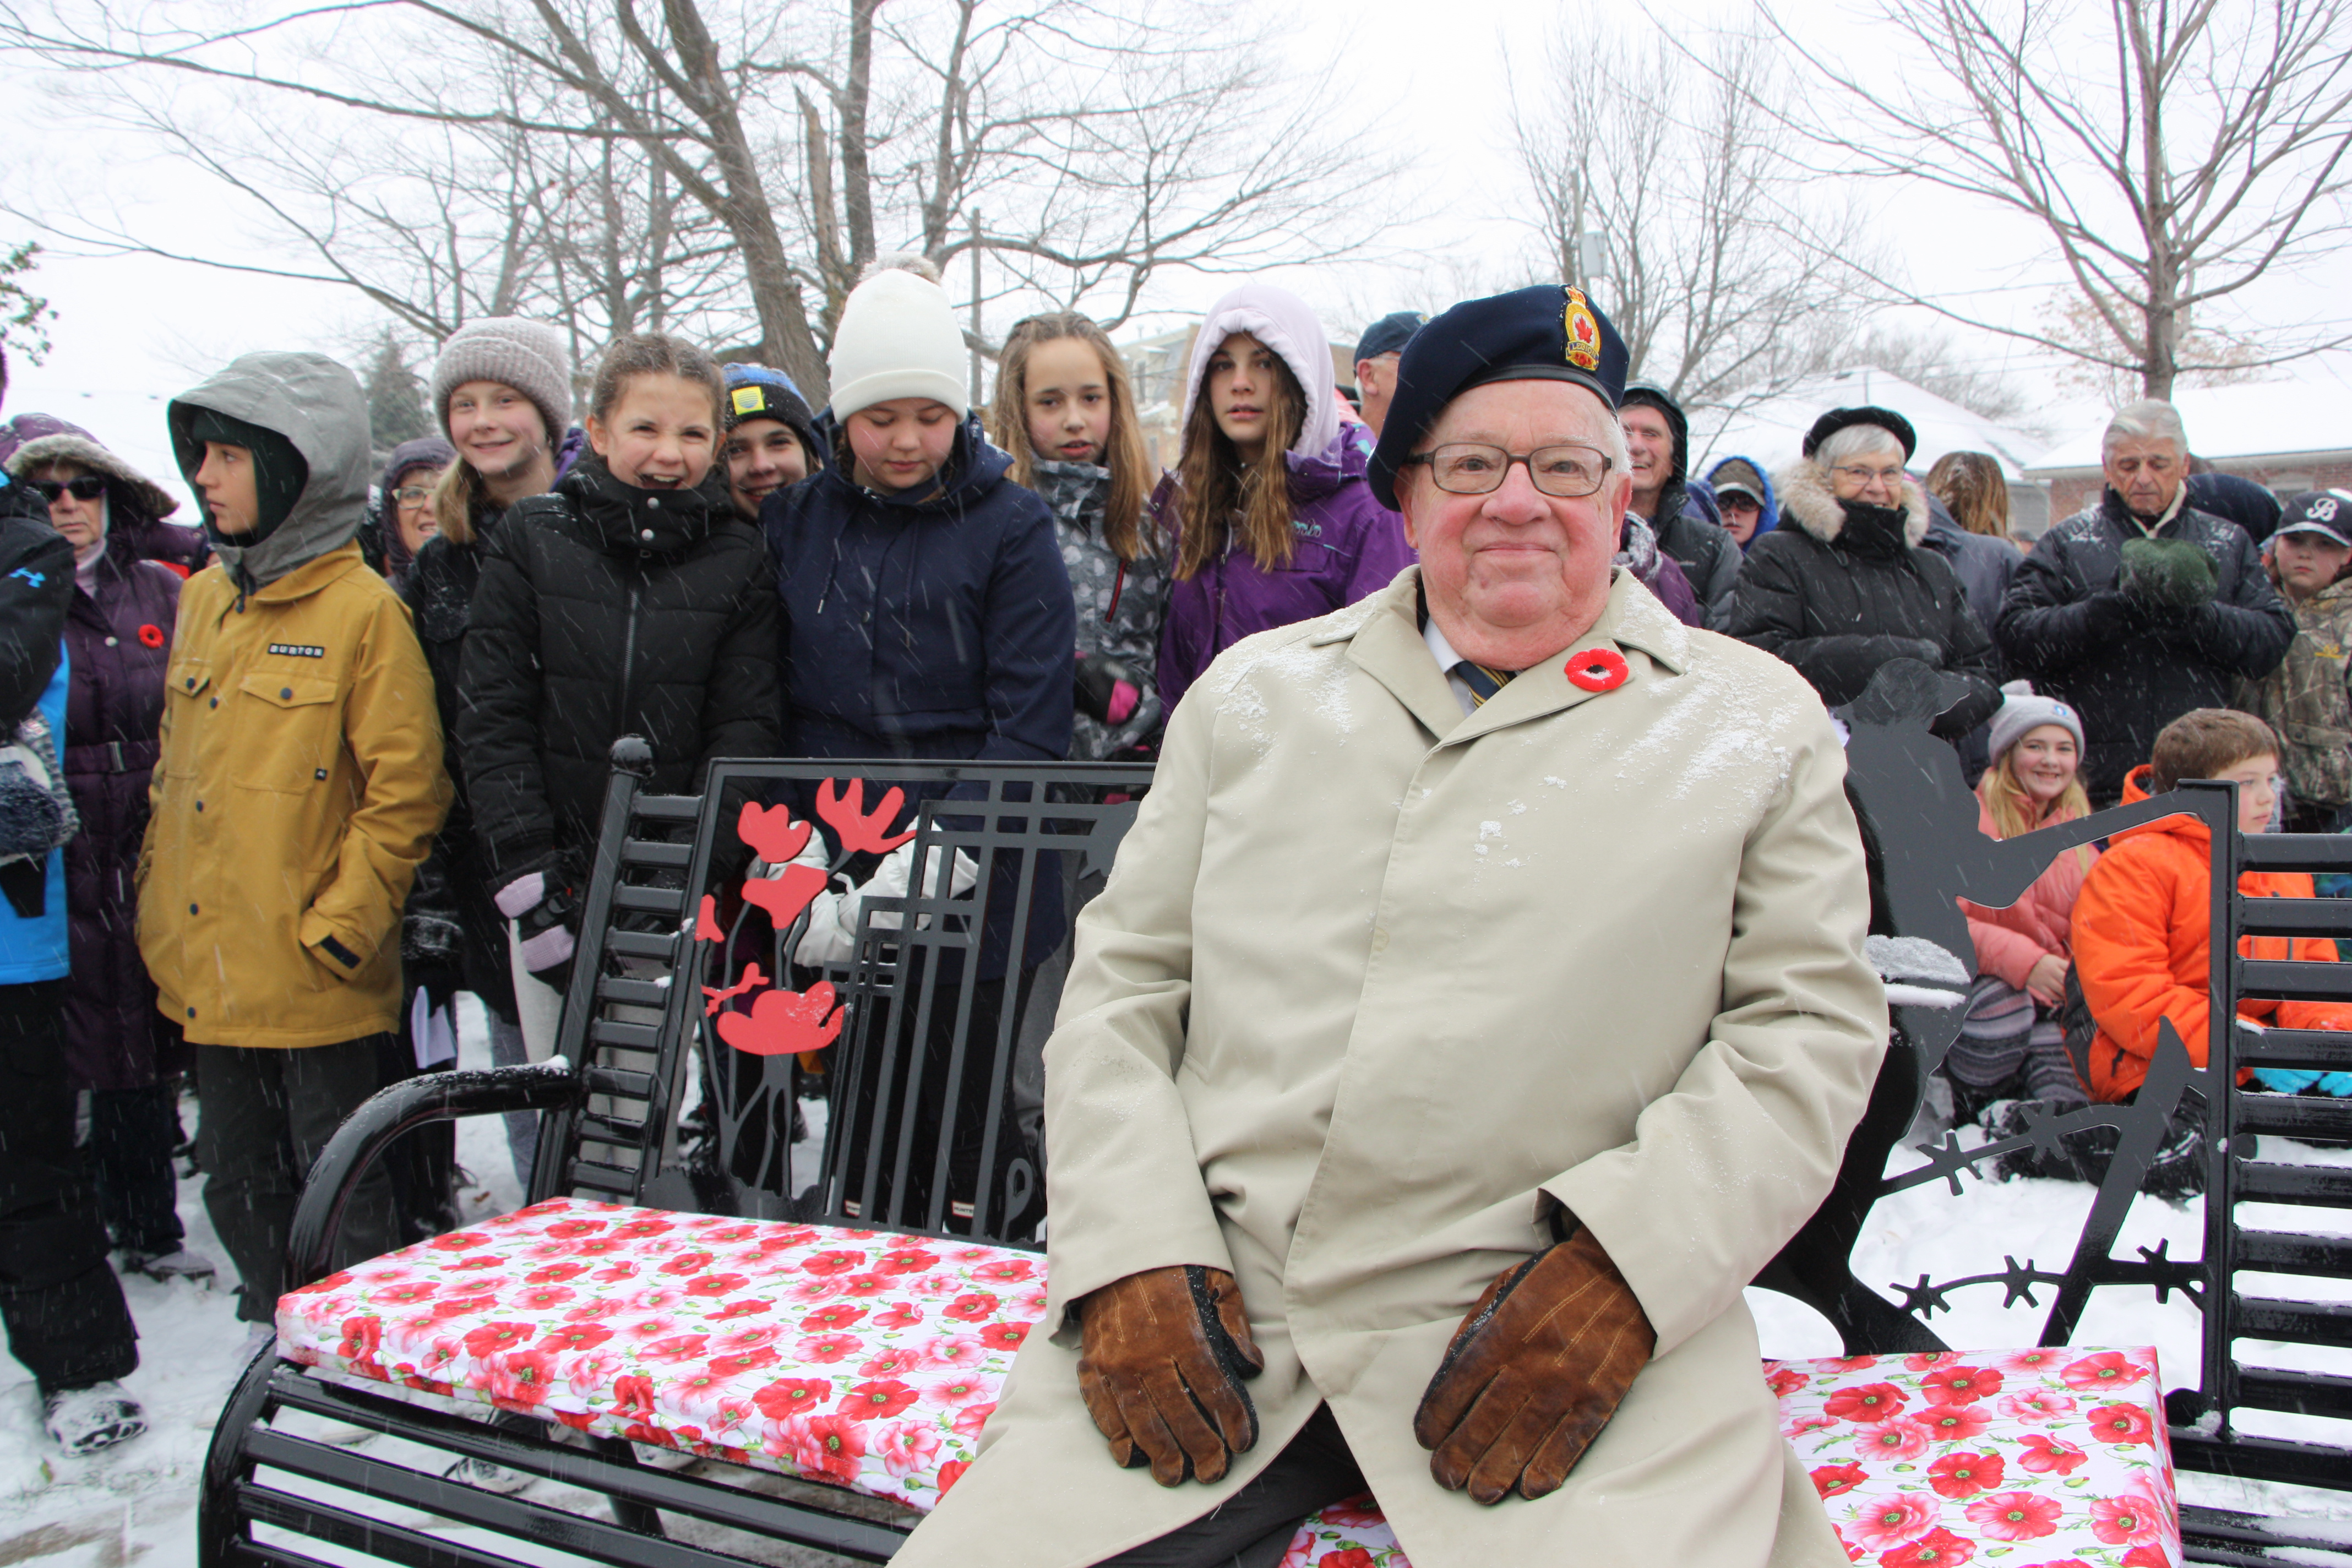 Collingwood remembers today as crowd packs museum grounds for cenotaph service (35 photos) - CollingwoodToday